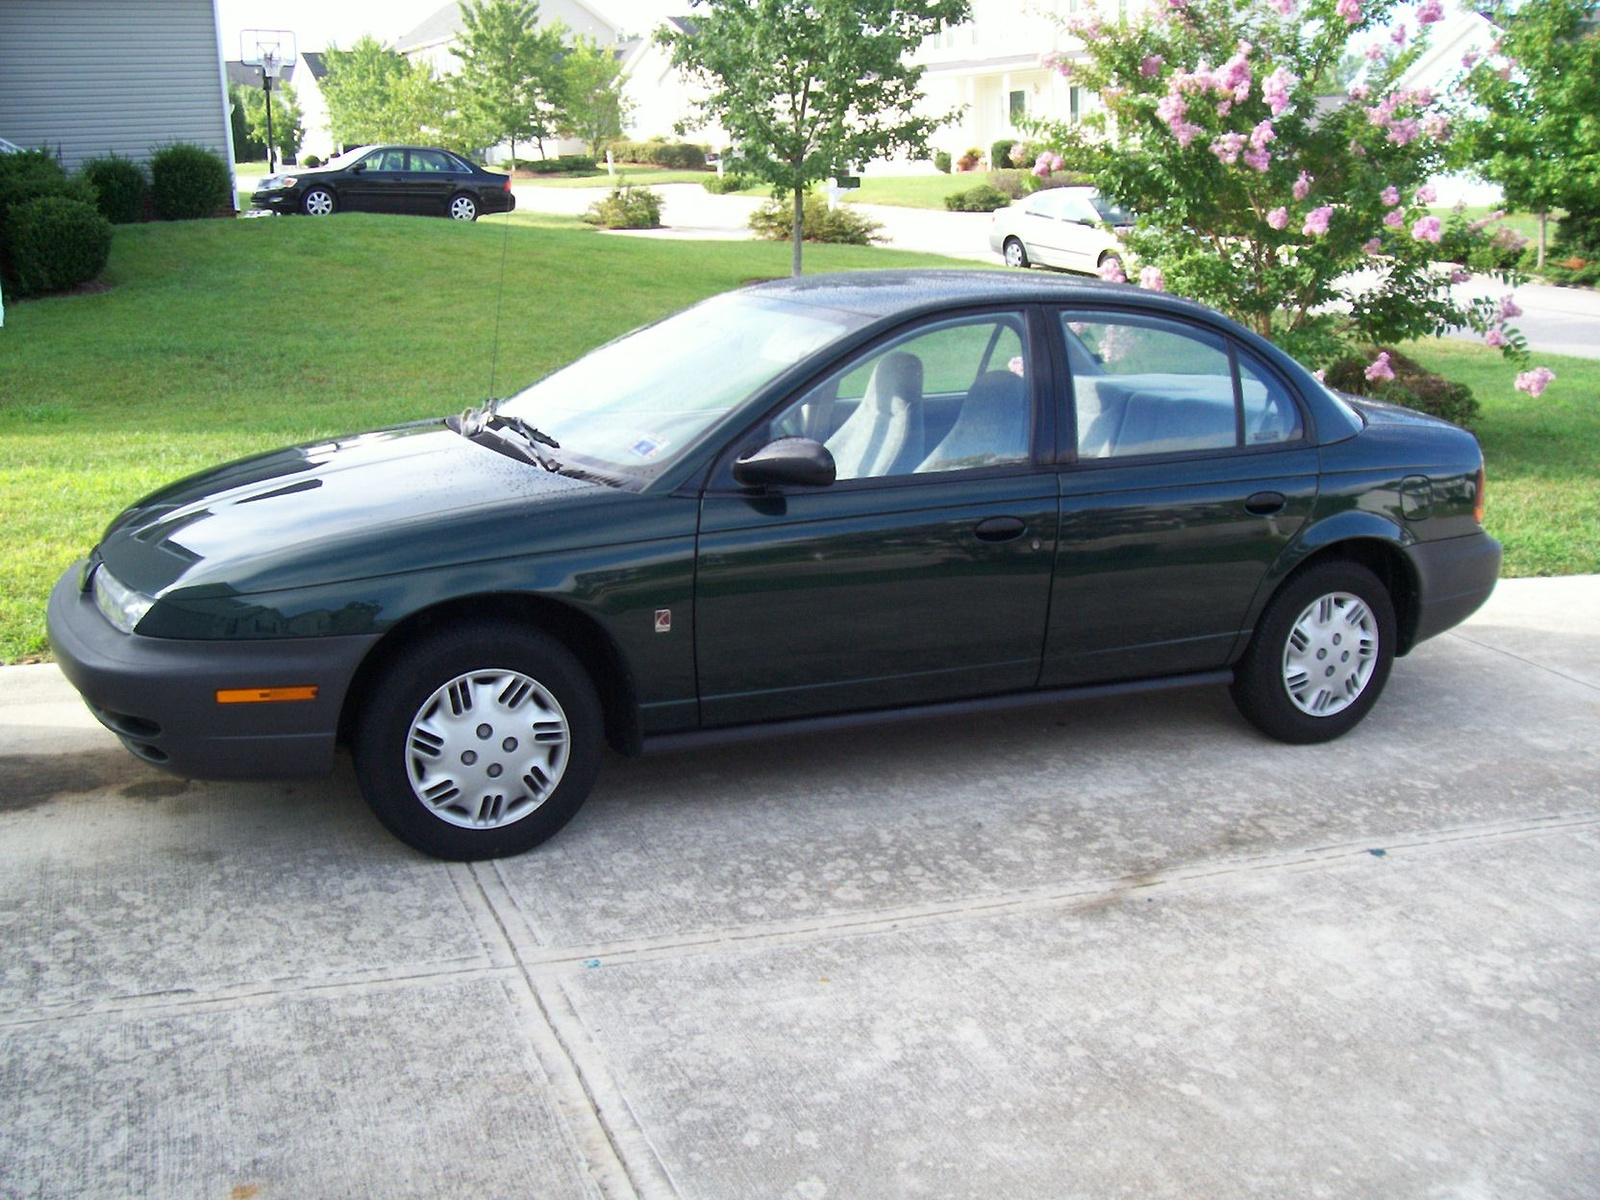 Picture of 1997 Saturn S-Series 4 Dr SL Sedan